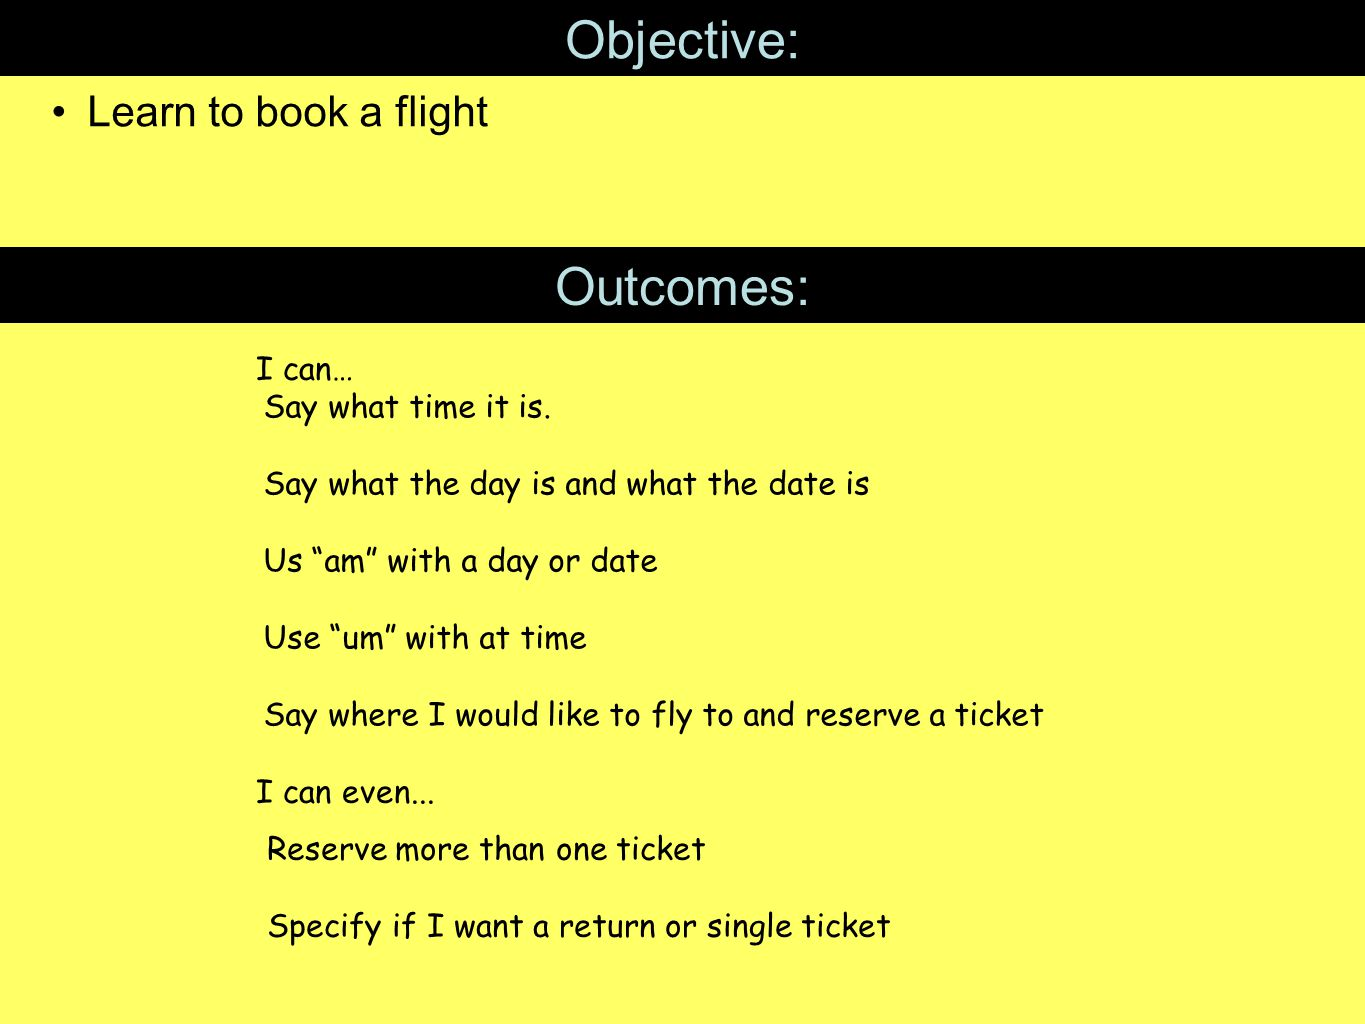 Objective: Learn to book a flight Outcomes: I can… I can even...